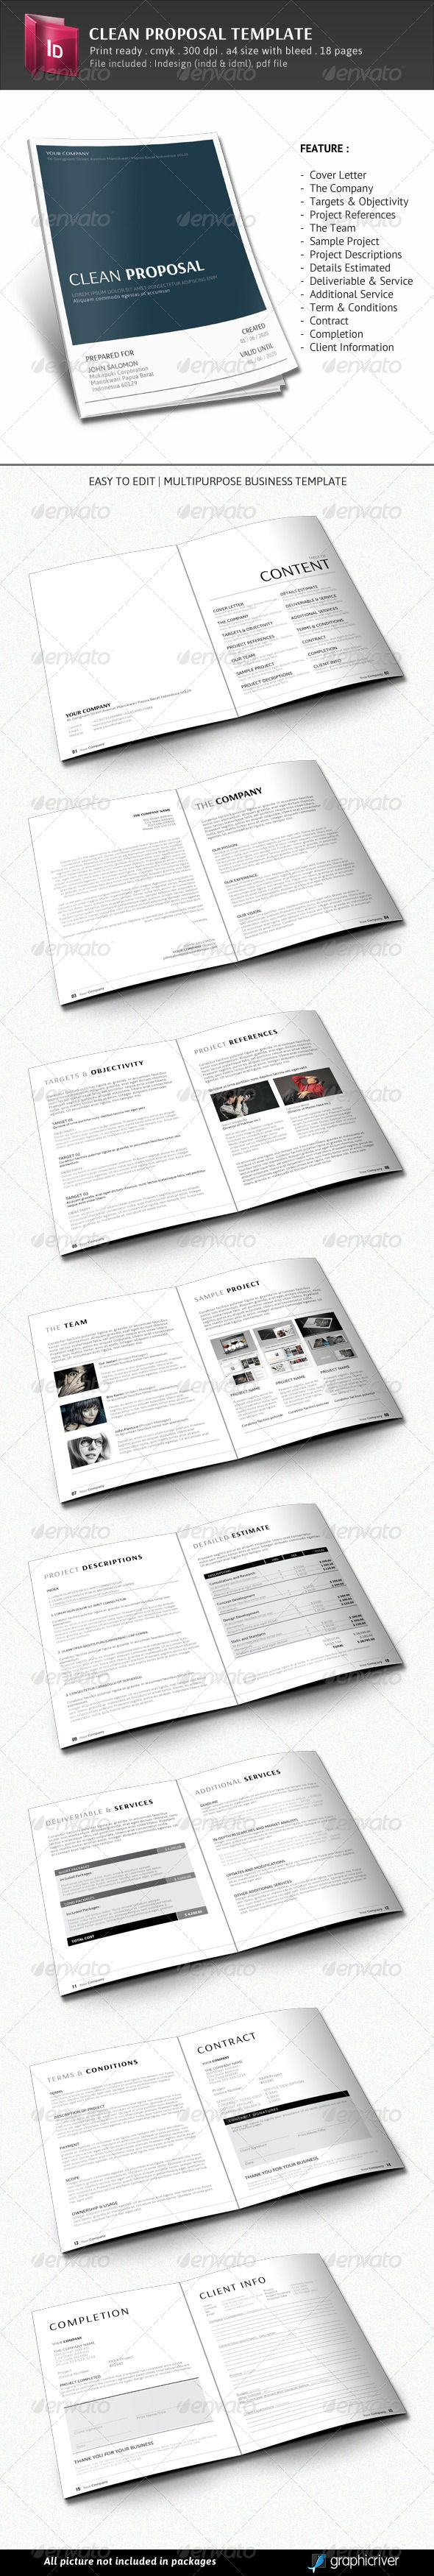 Commercial Proposal Format Awesome 226 Best Proposal & Invoice Templates Images On Pinterest